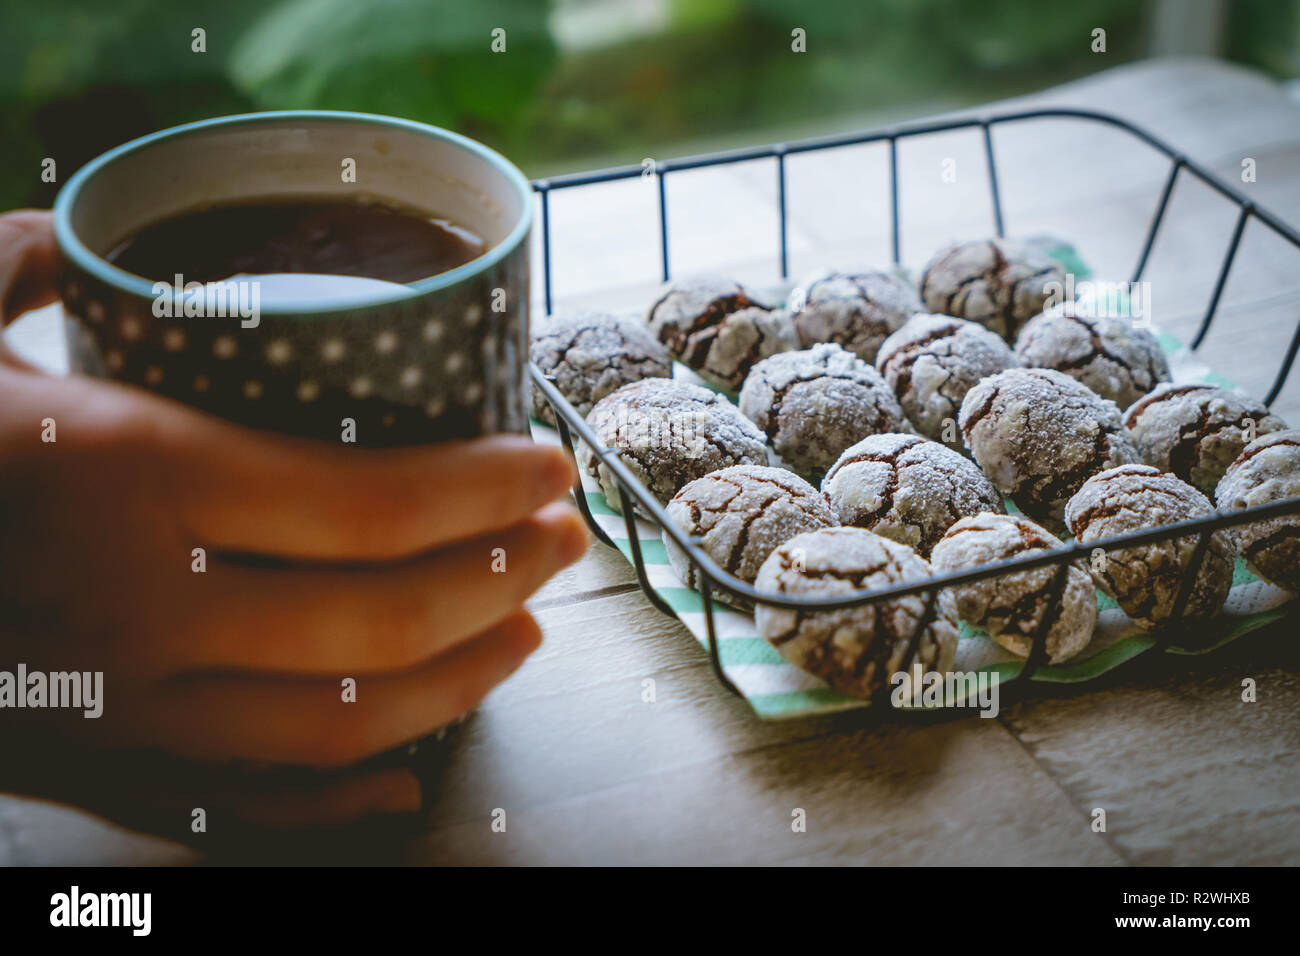 Chocolate crinkle cookies in a basket with a cup of tea hold by hands on a wooden table. Close up view. Landscape format. - Stock Image